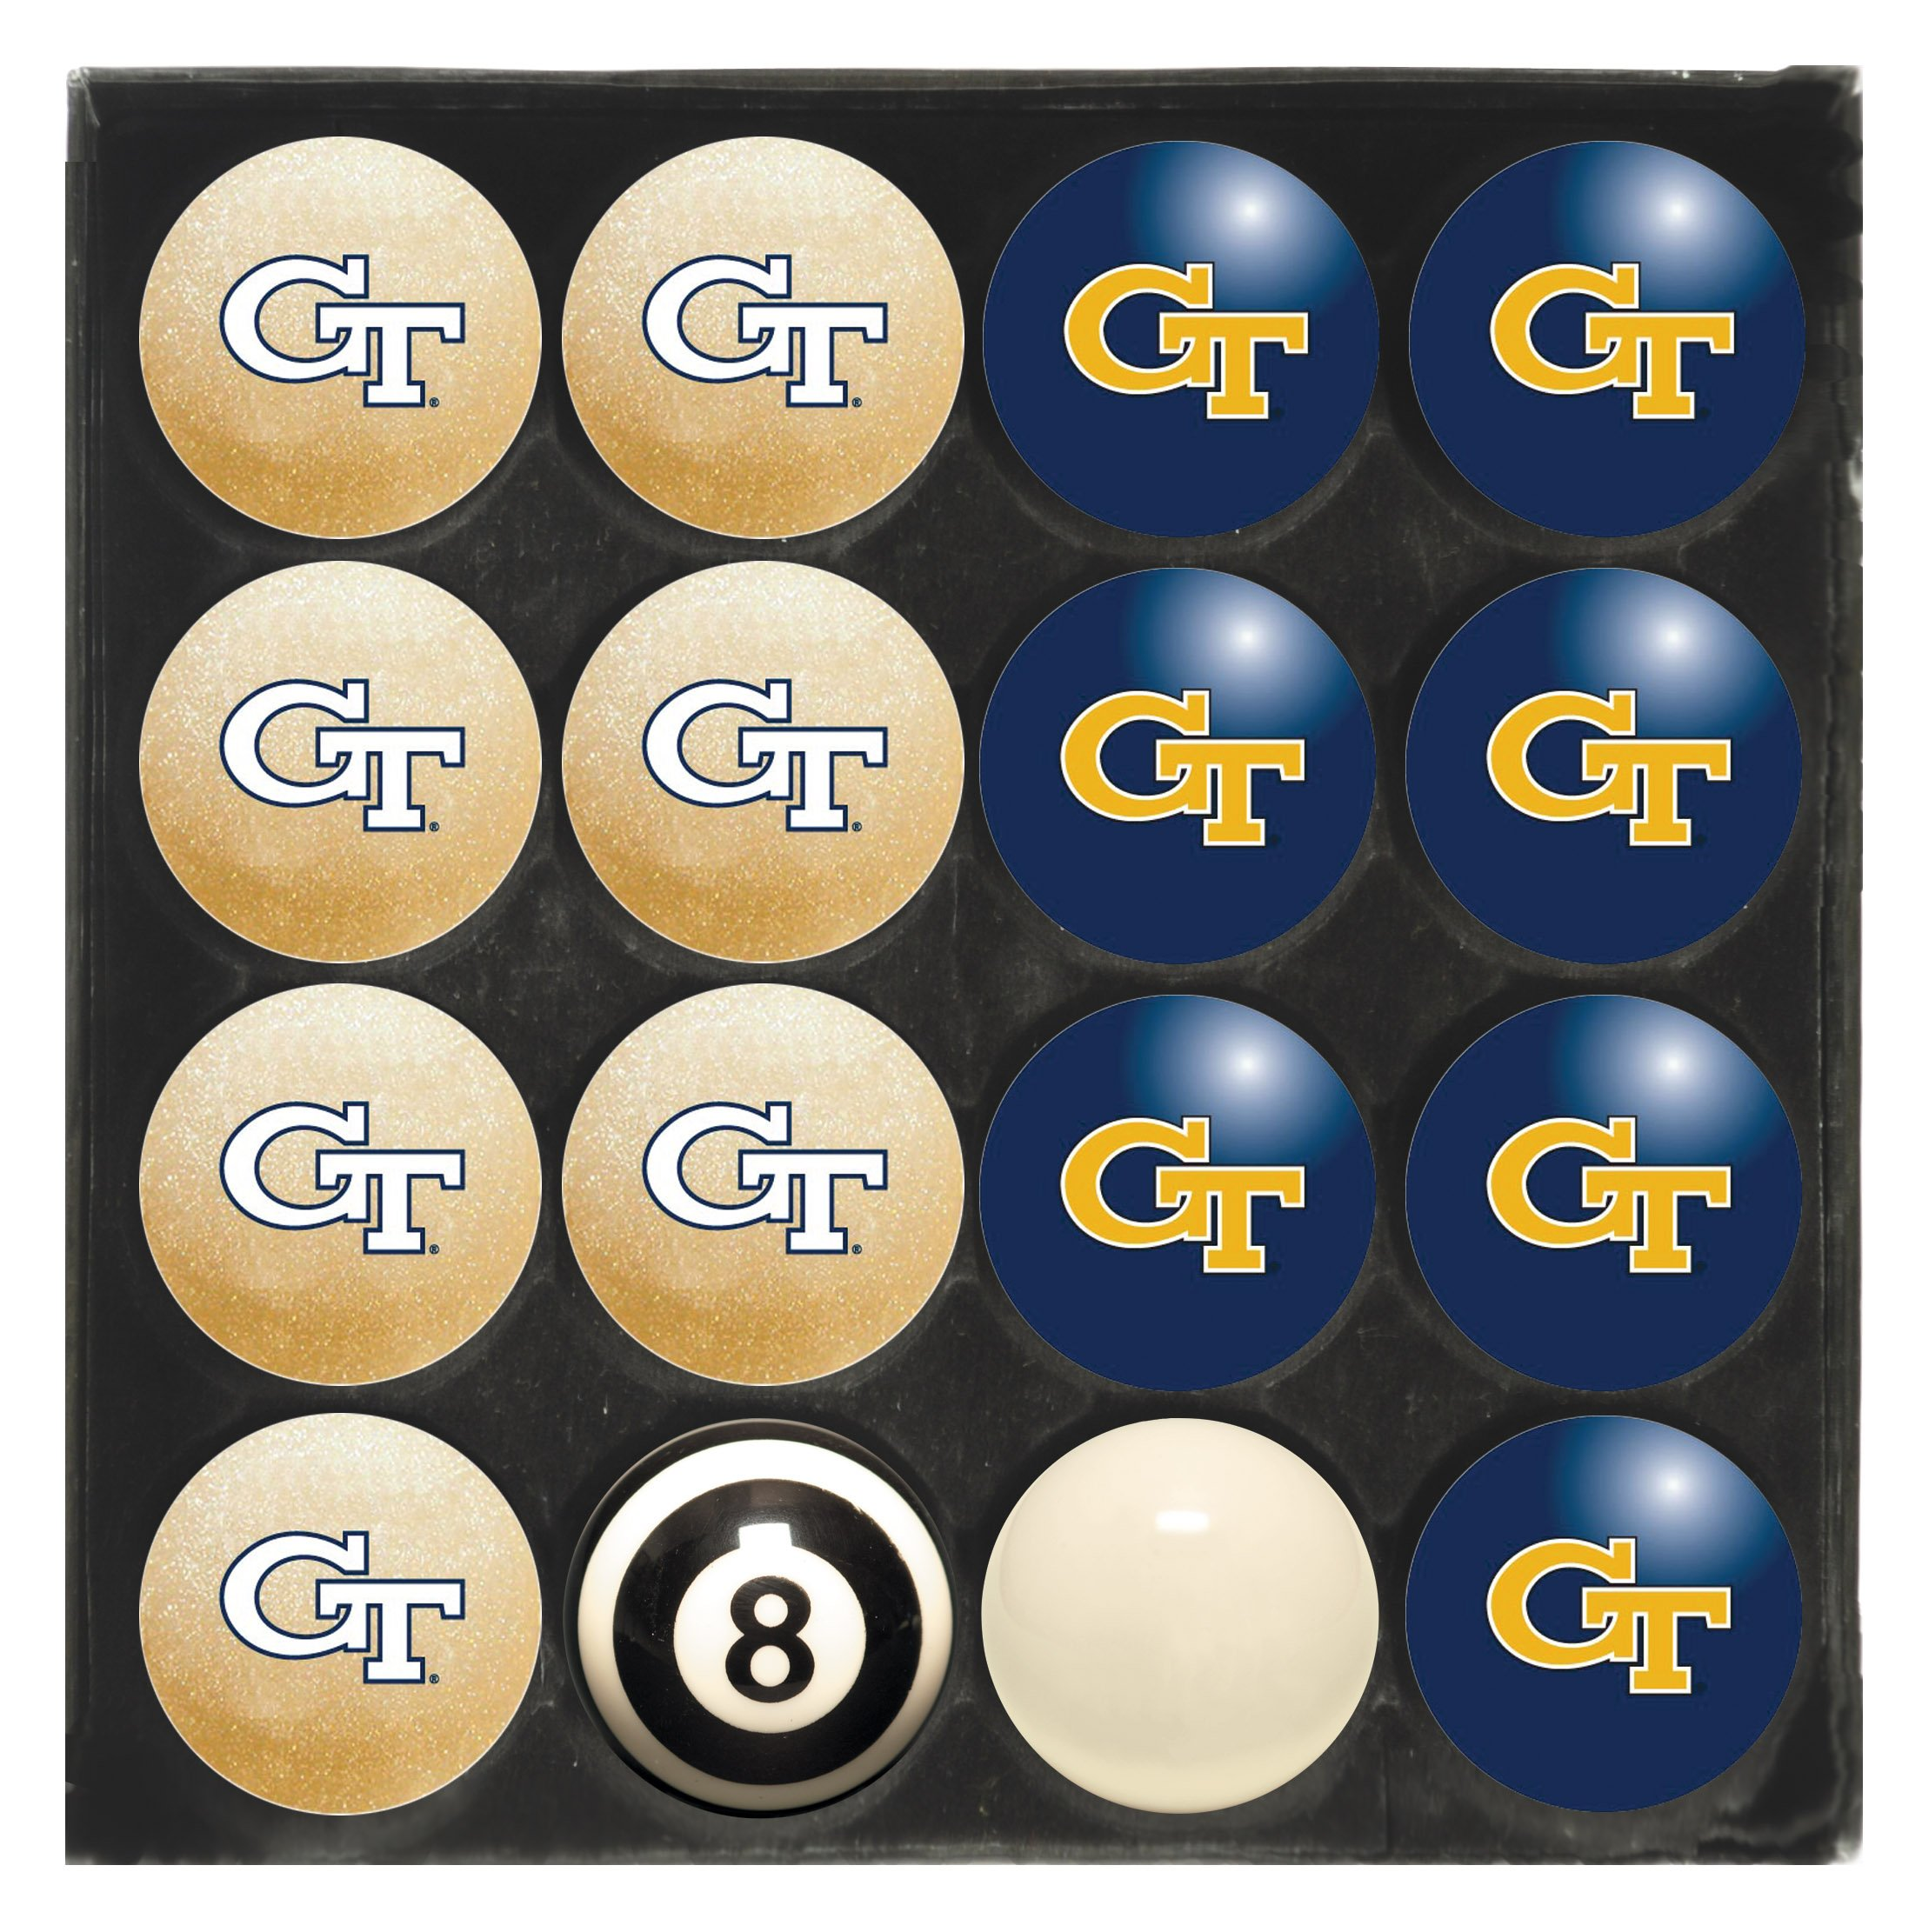 Imperial Officially Licensed NCAA Merchandise: Home vs. Away Billiard/Pool Balls, Complete 16 Ball Set, Georgia Tech Yellow Jackets